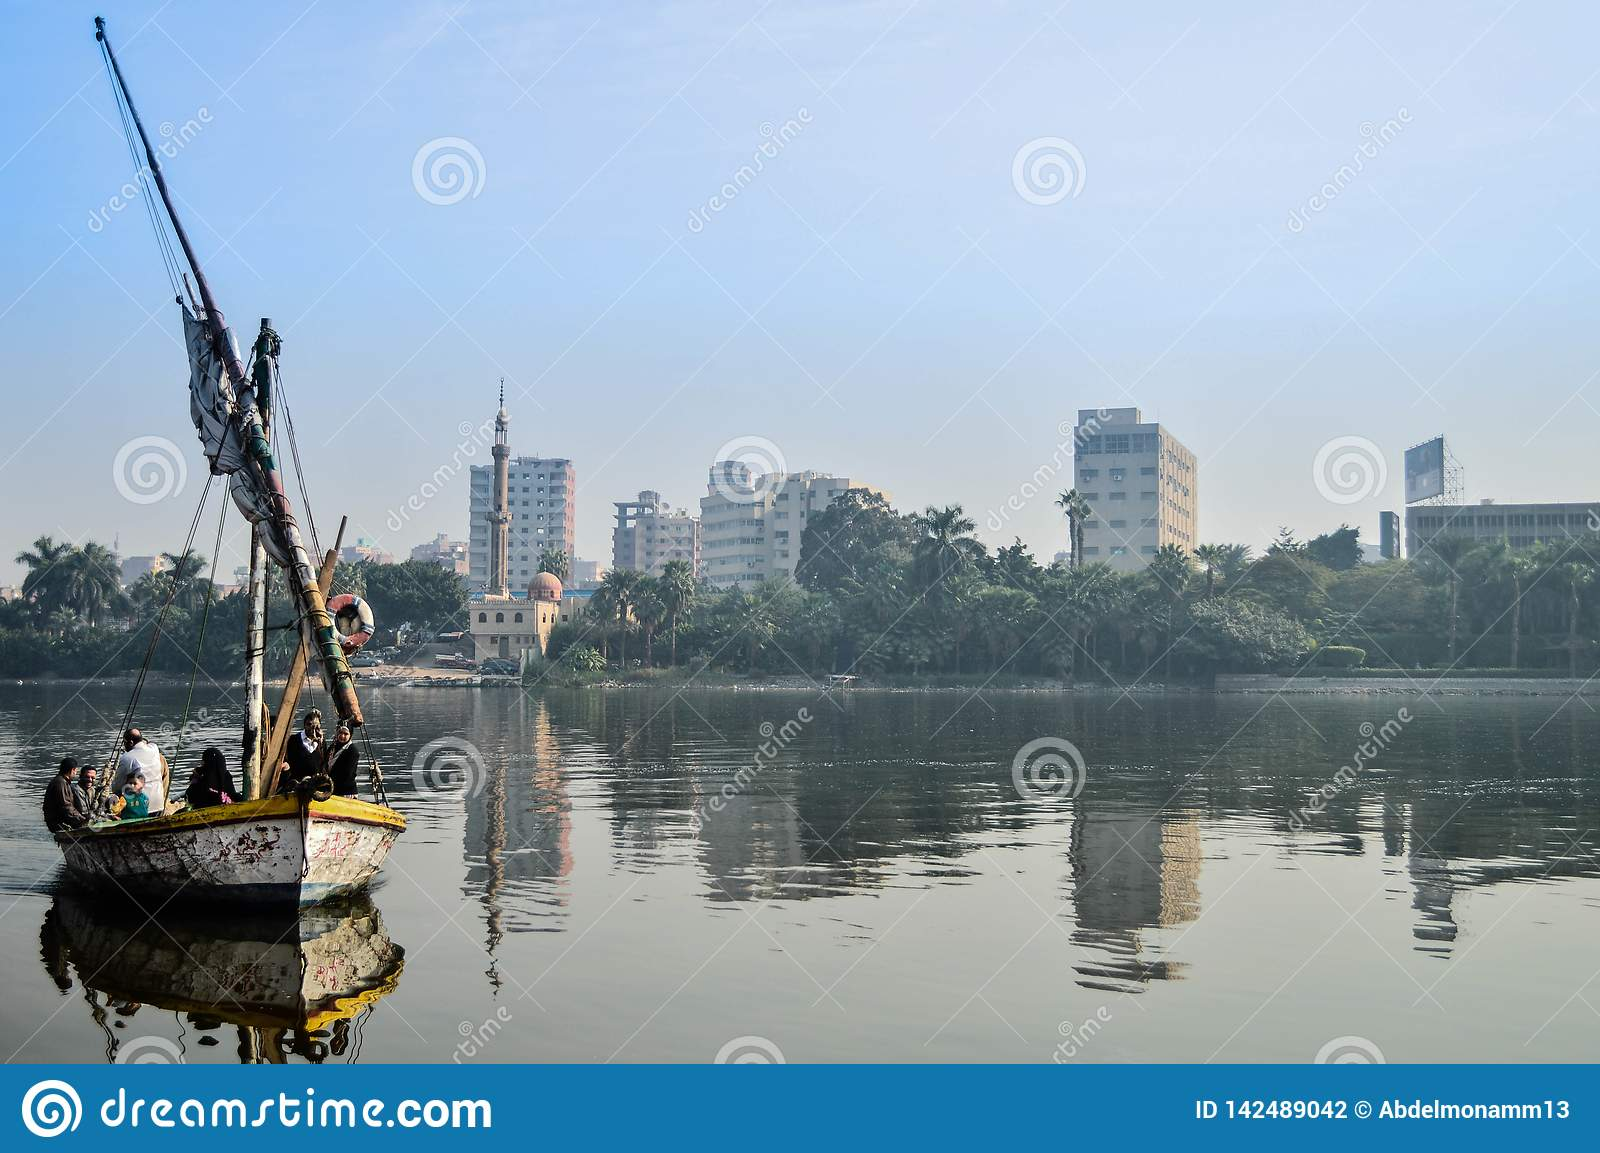 A ship in the Nile by people